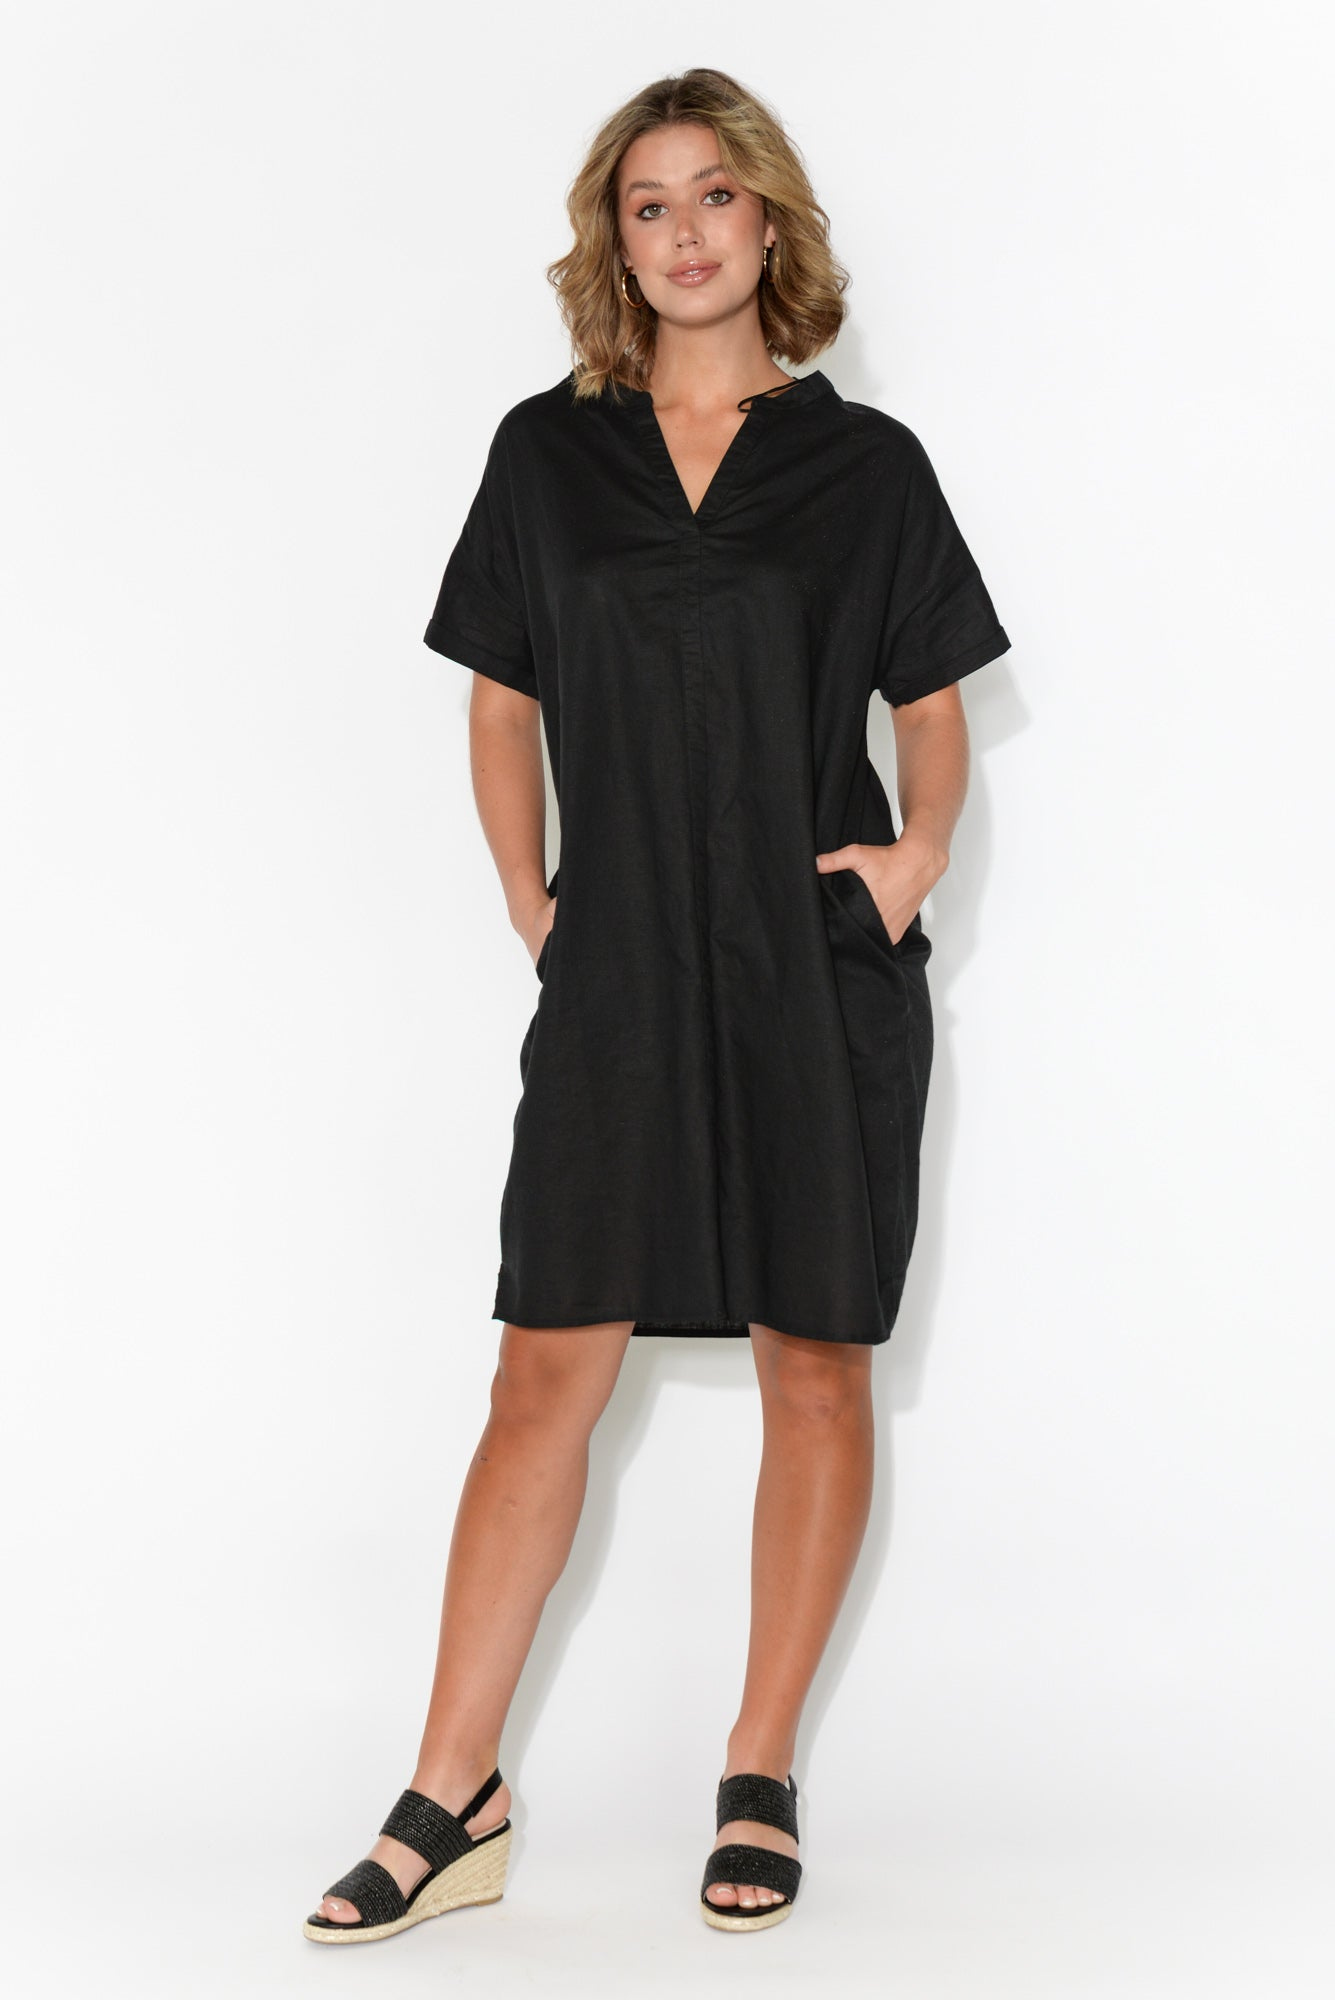 Mika Black Linen V Split Dress